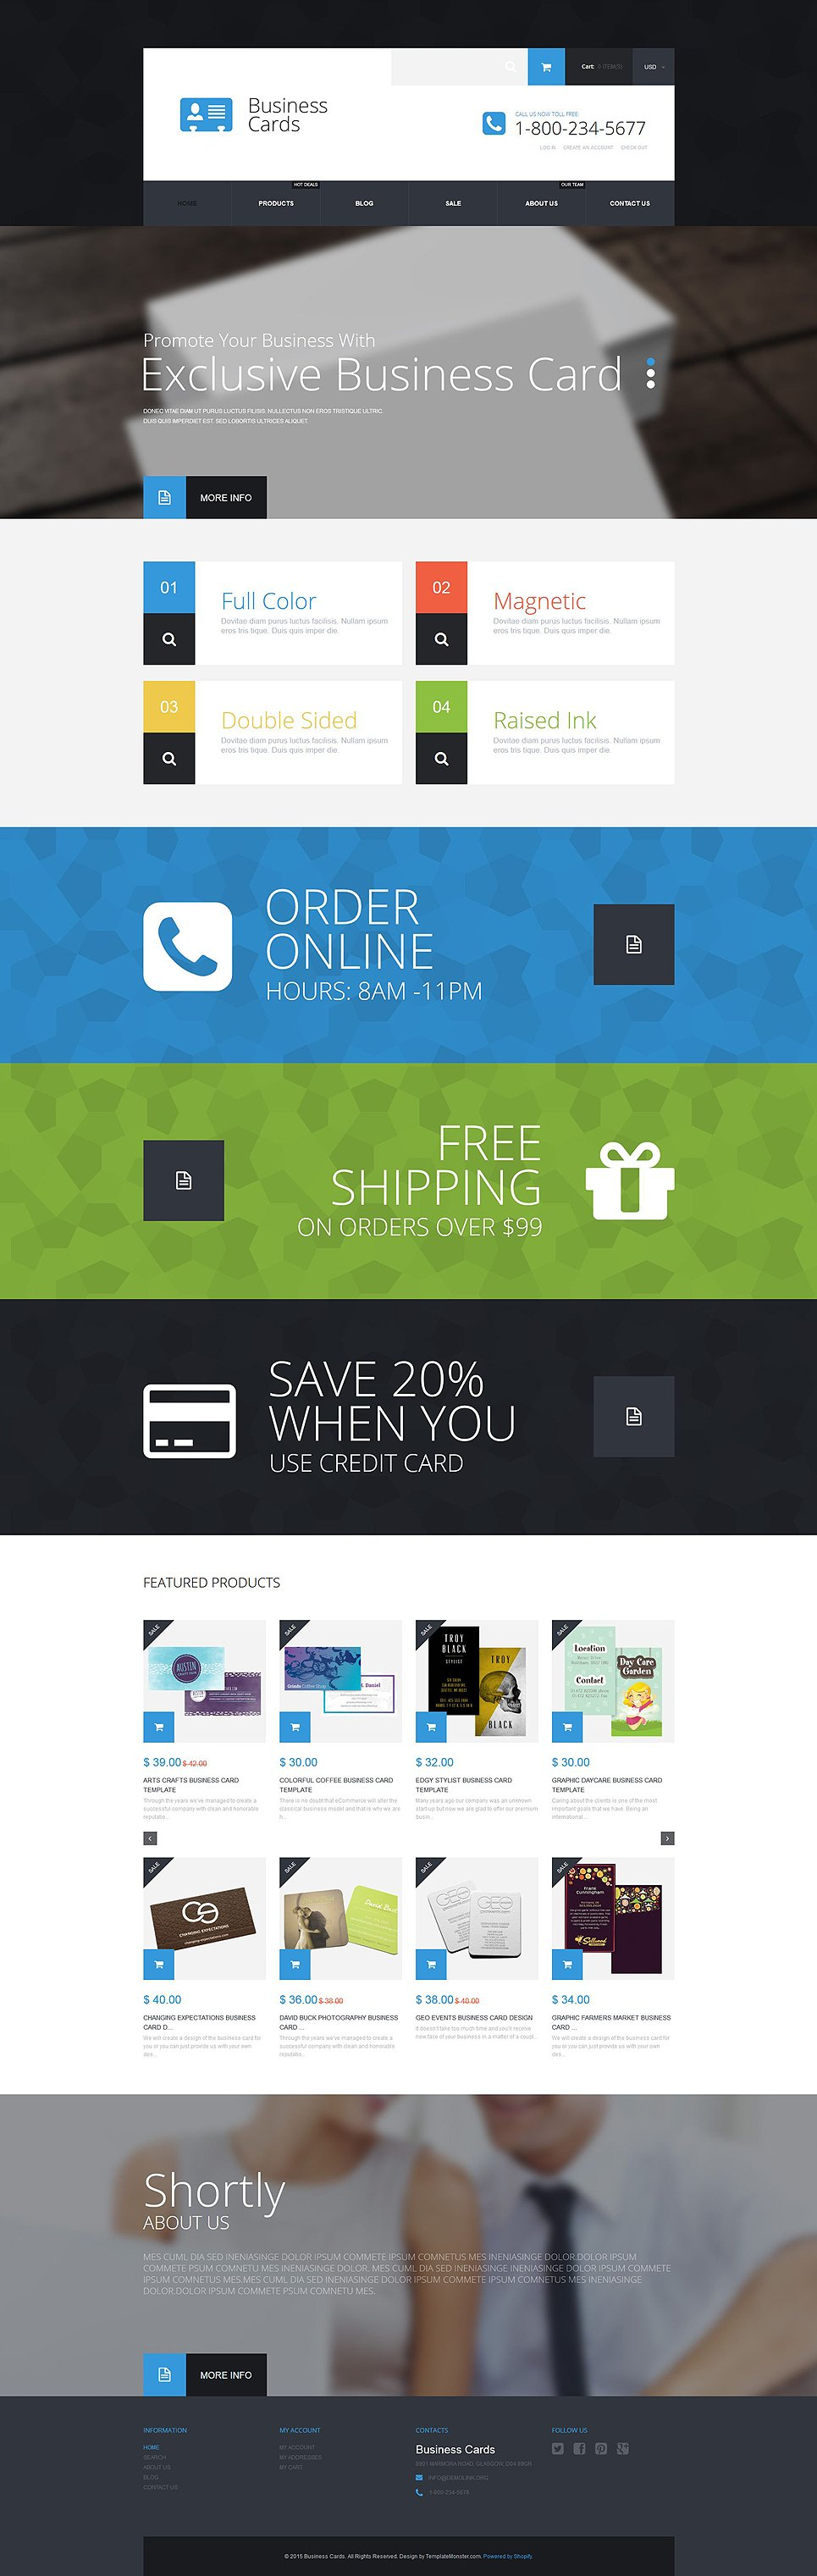 Printing Services Shopify Theme